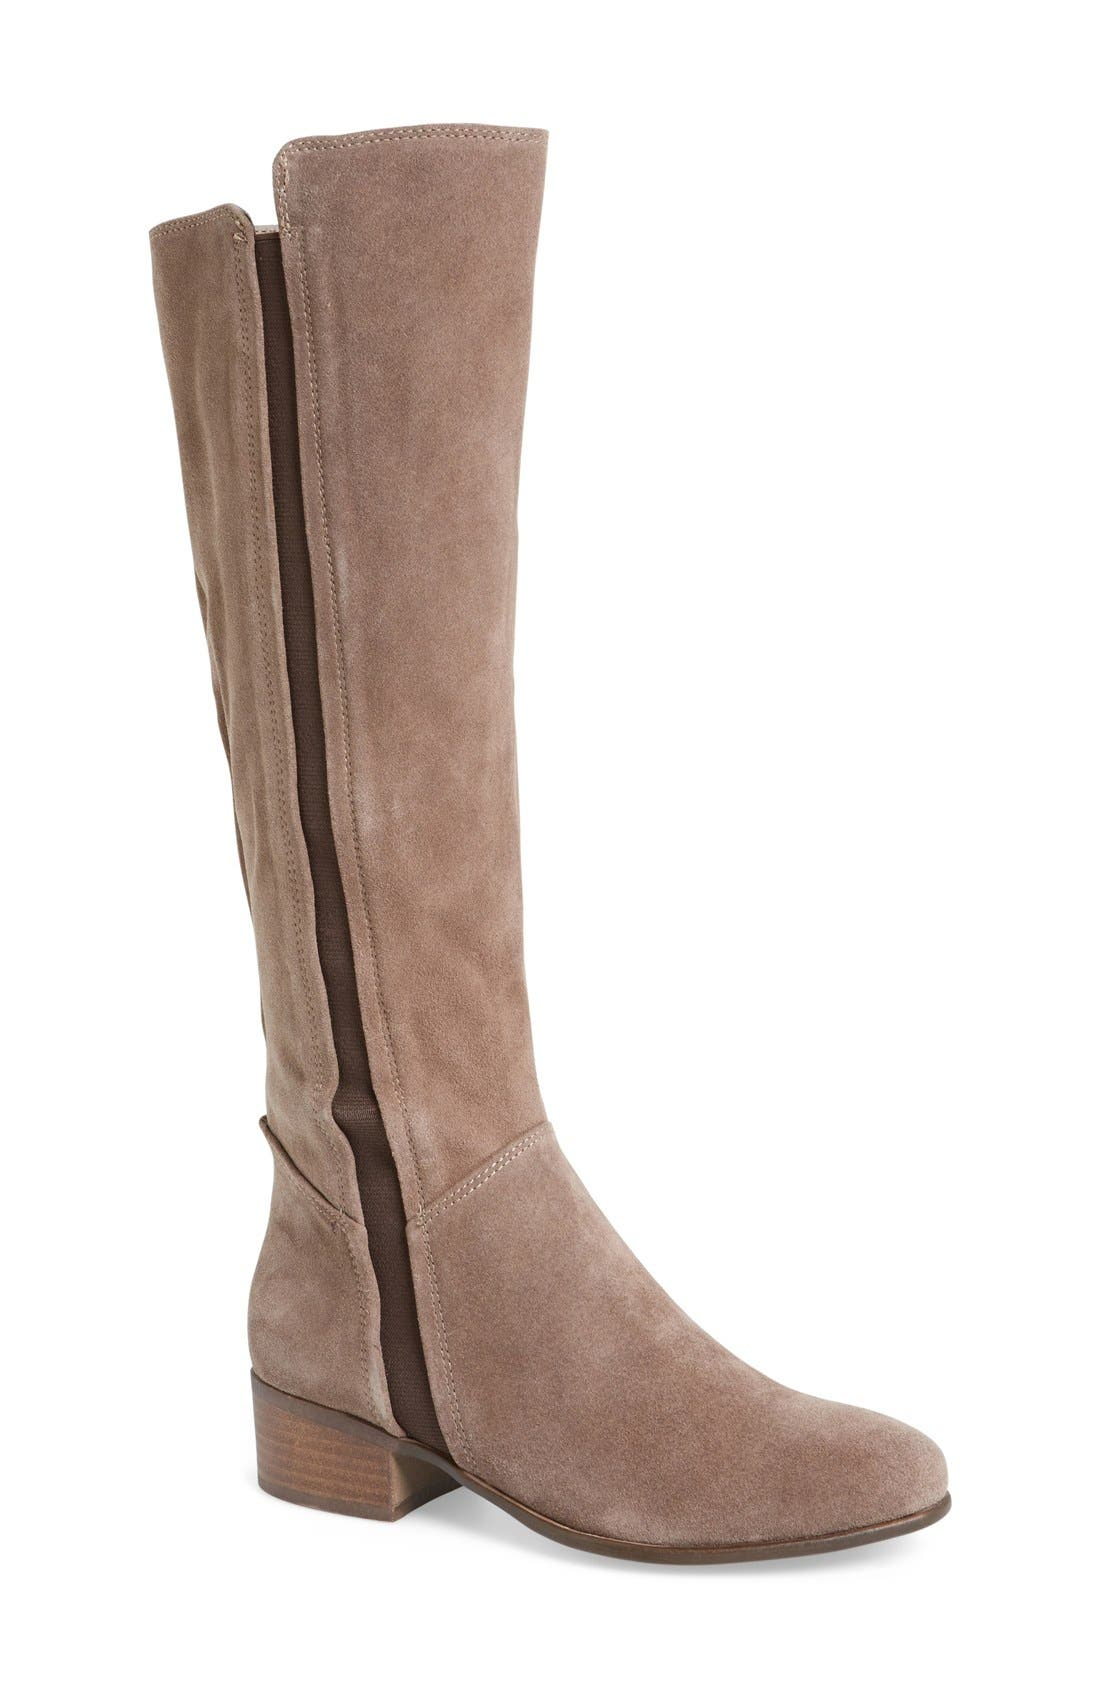 Alternate Image 1 Selected - Steve Madden Pull-On Boot (Women)